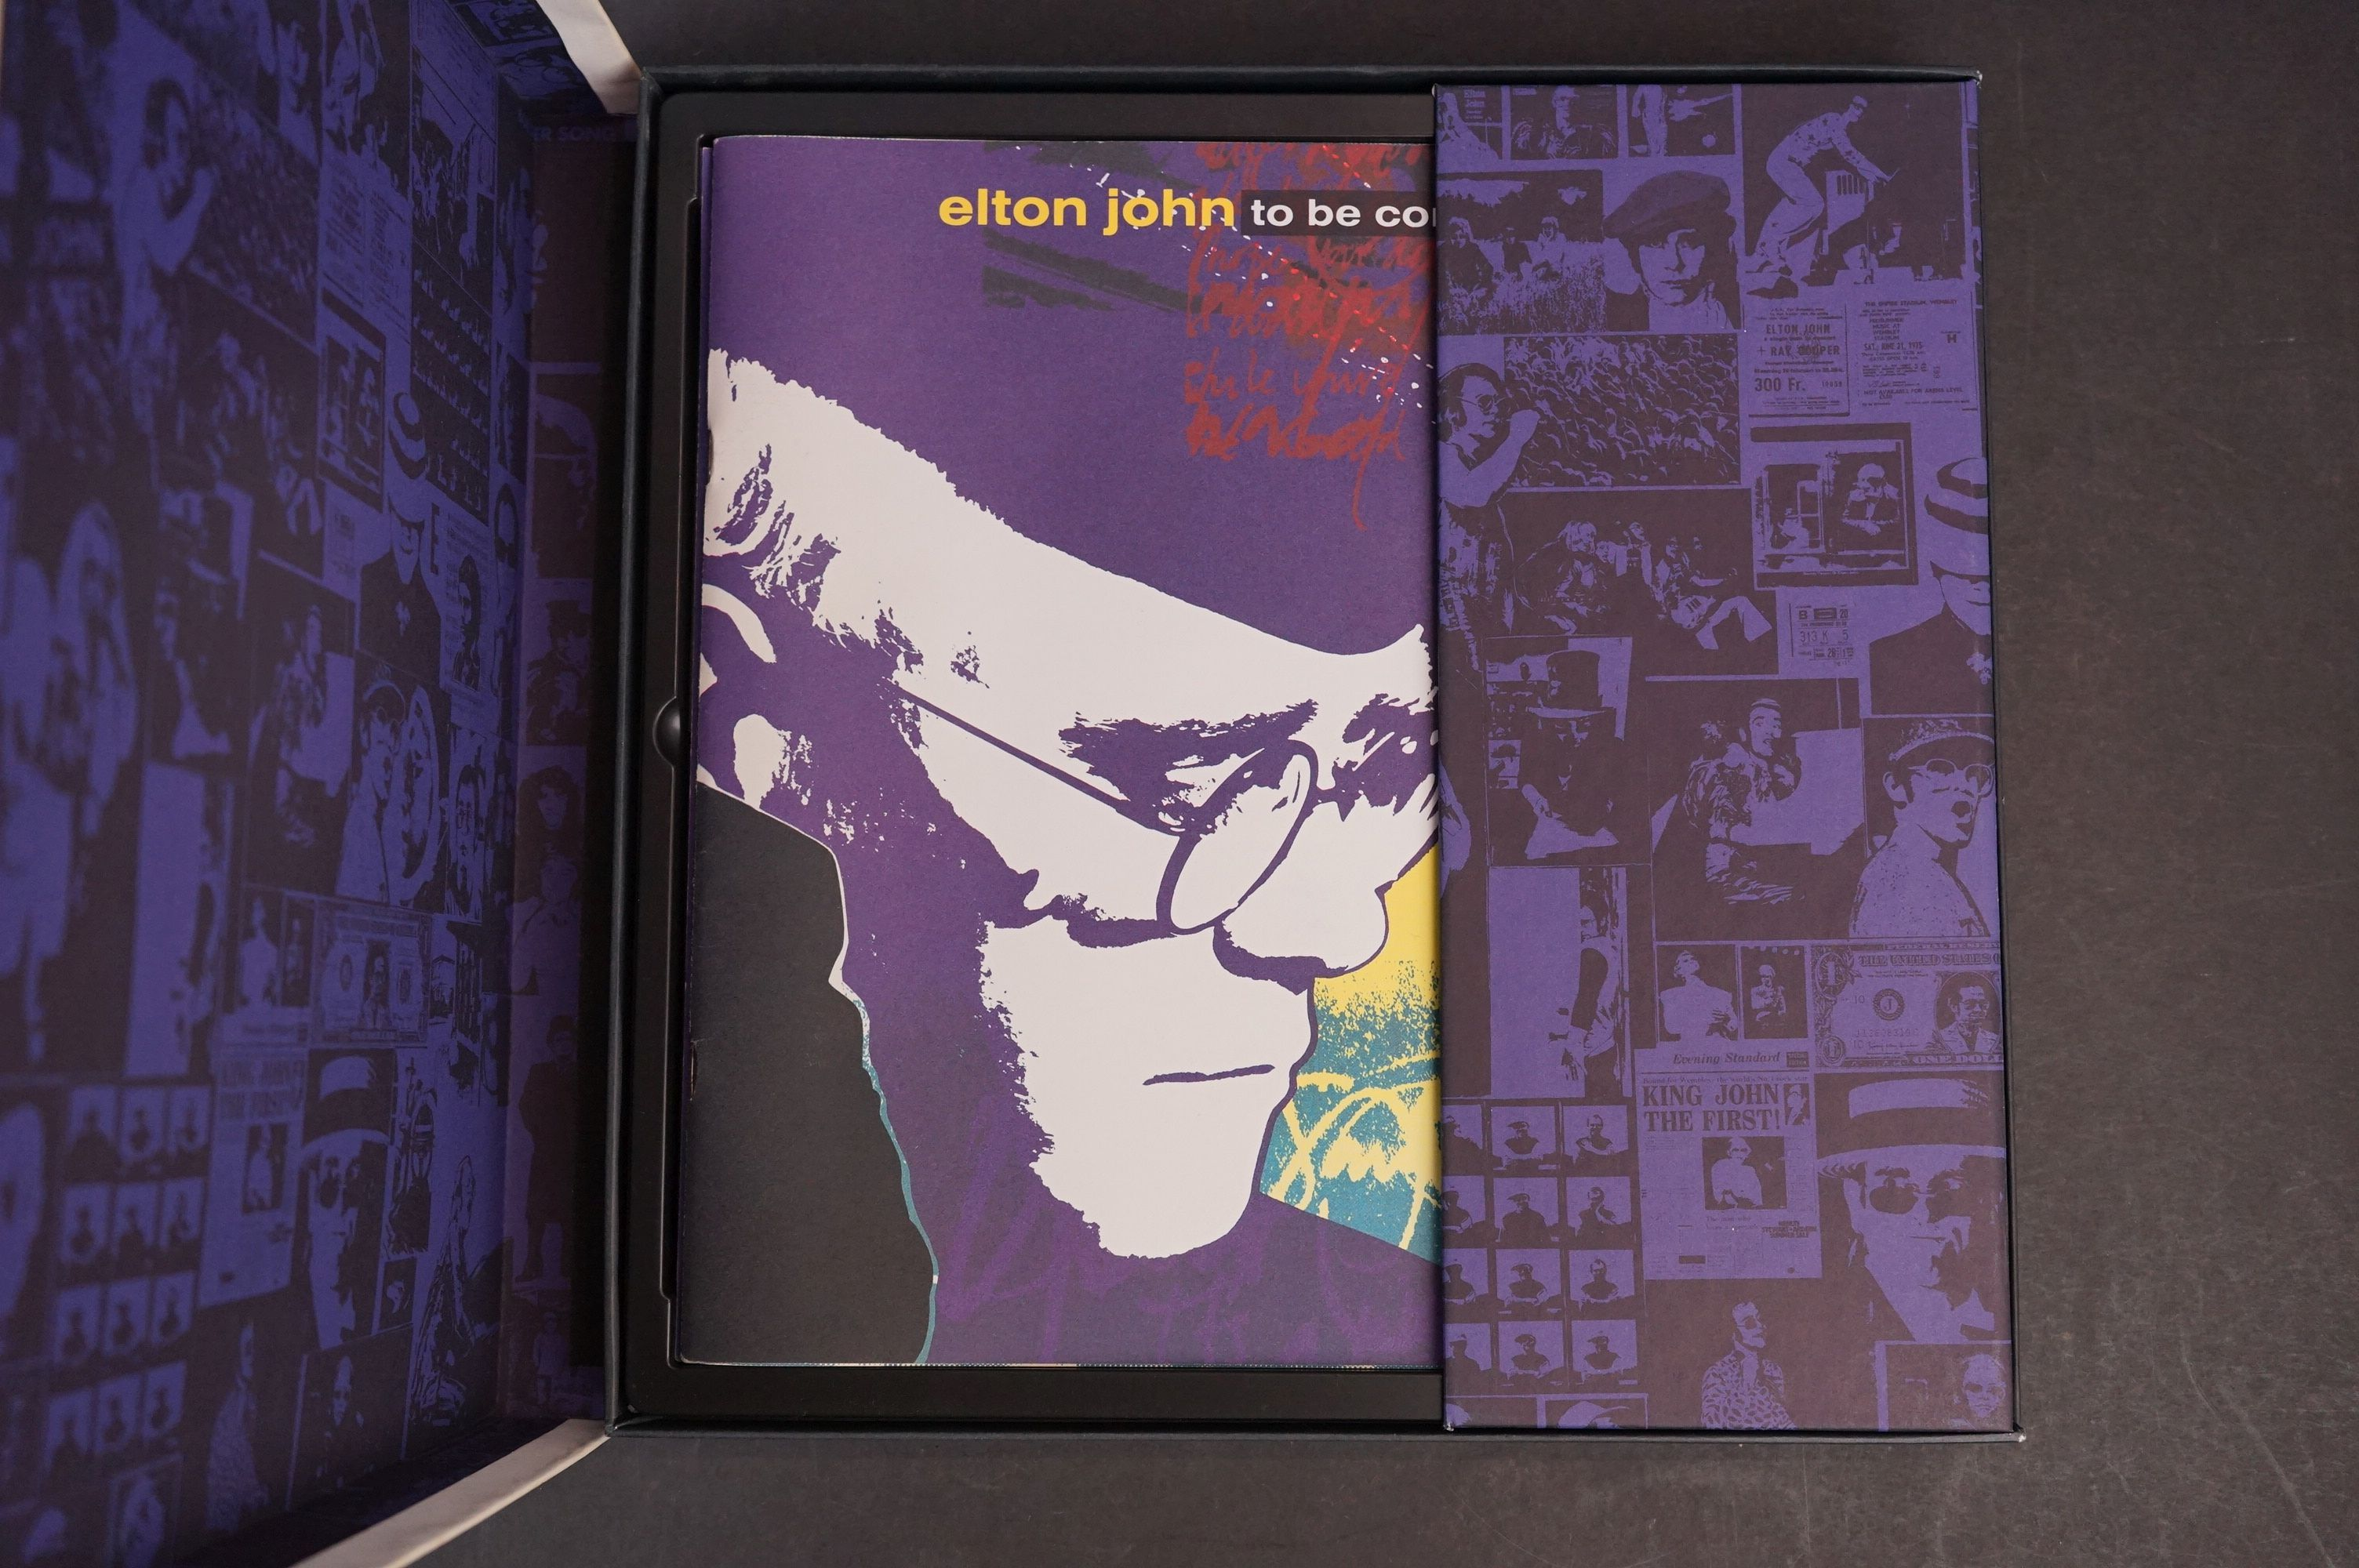 CD - Elton John To Be Continued Box Set MCAD4 - 10110 complete and vg - Image 2 of 6